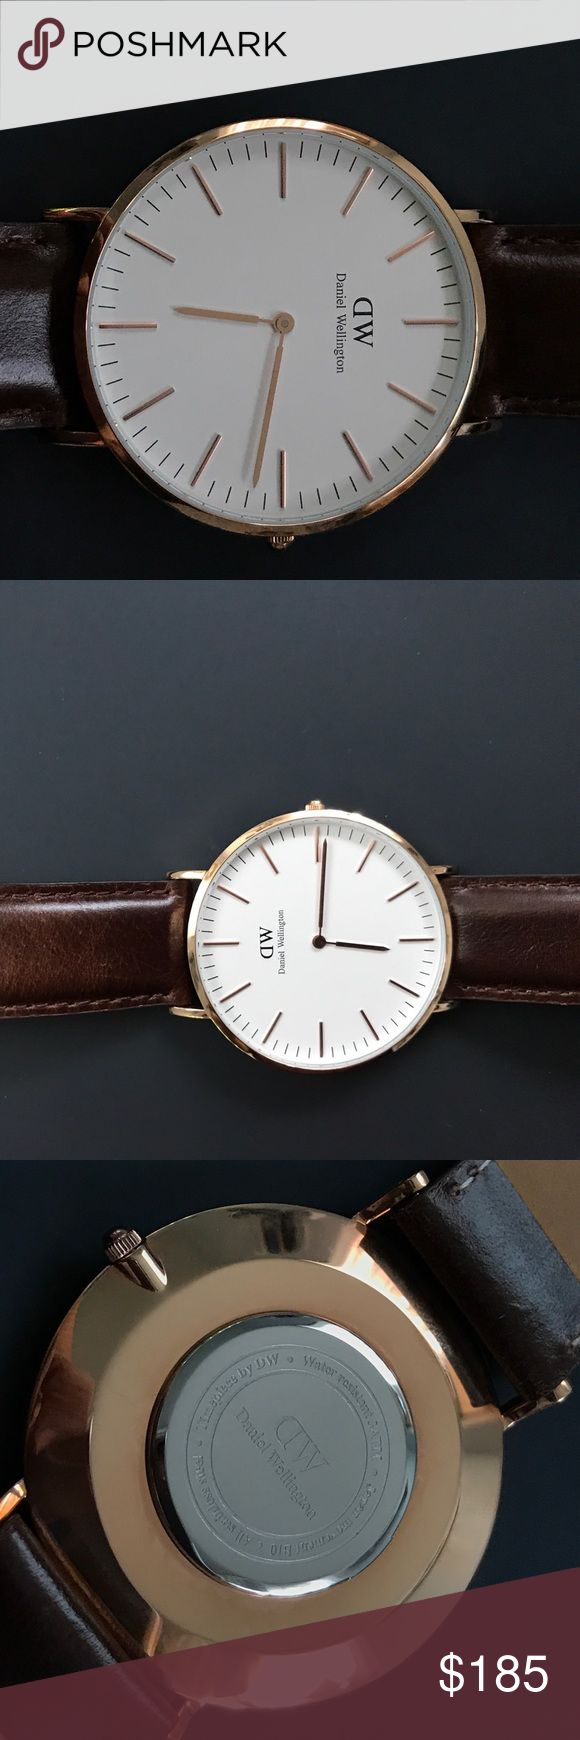 DANIEL WELLINGTON CLASSIC BRISTOL 40mm ROSE GOLD Daniel Wellington Classic Bristol in Rose Gold. Used a few times.  Purchased directly from Daniel Wellington.com. Comes with original box and paperwork. Daniel Wellington Other